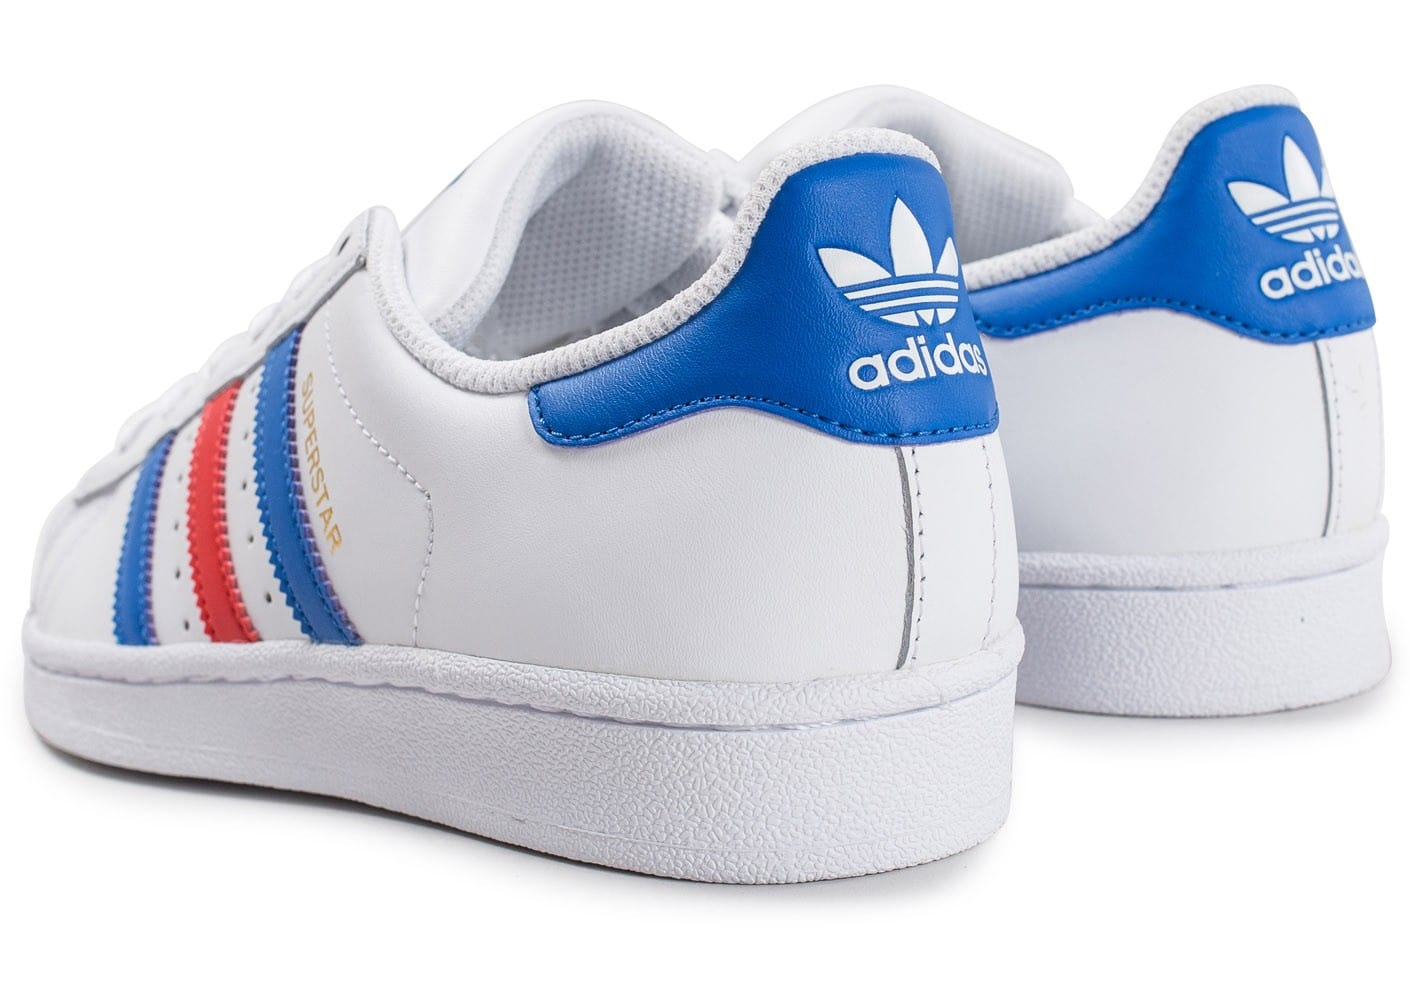 Adidas Junior Bleu Rouge Chaussures Chausport Superstar Blanc O80Pnwk